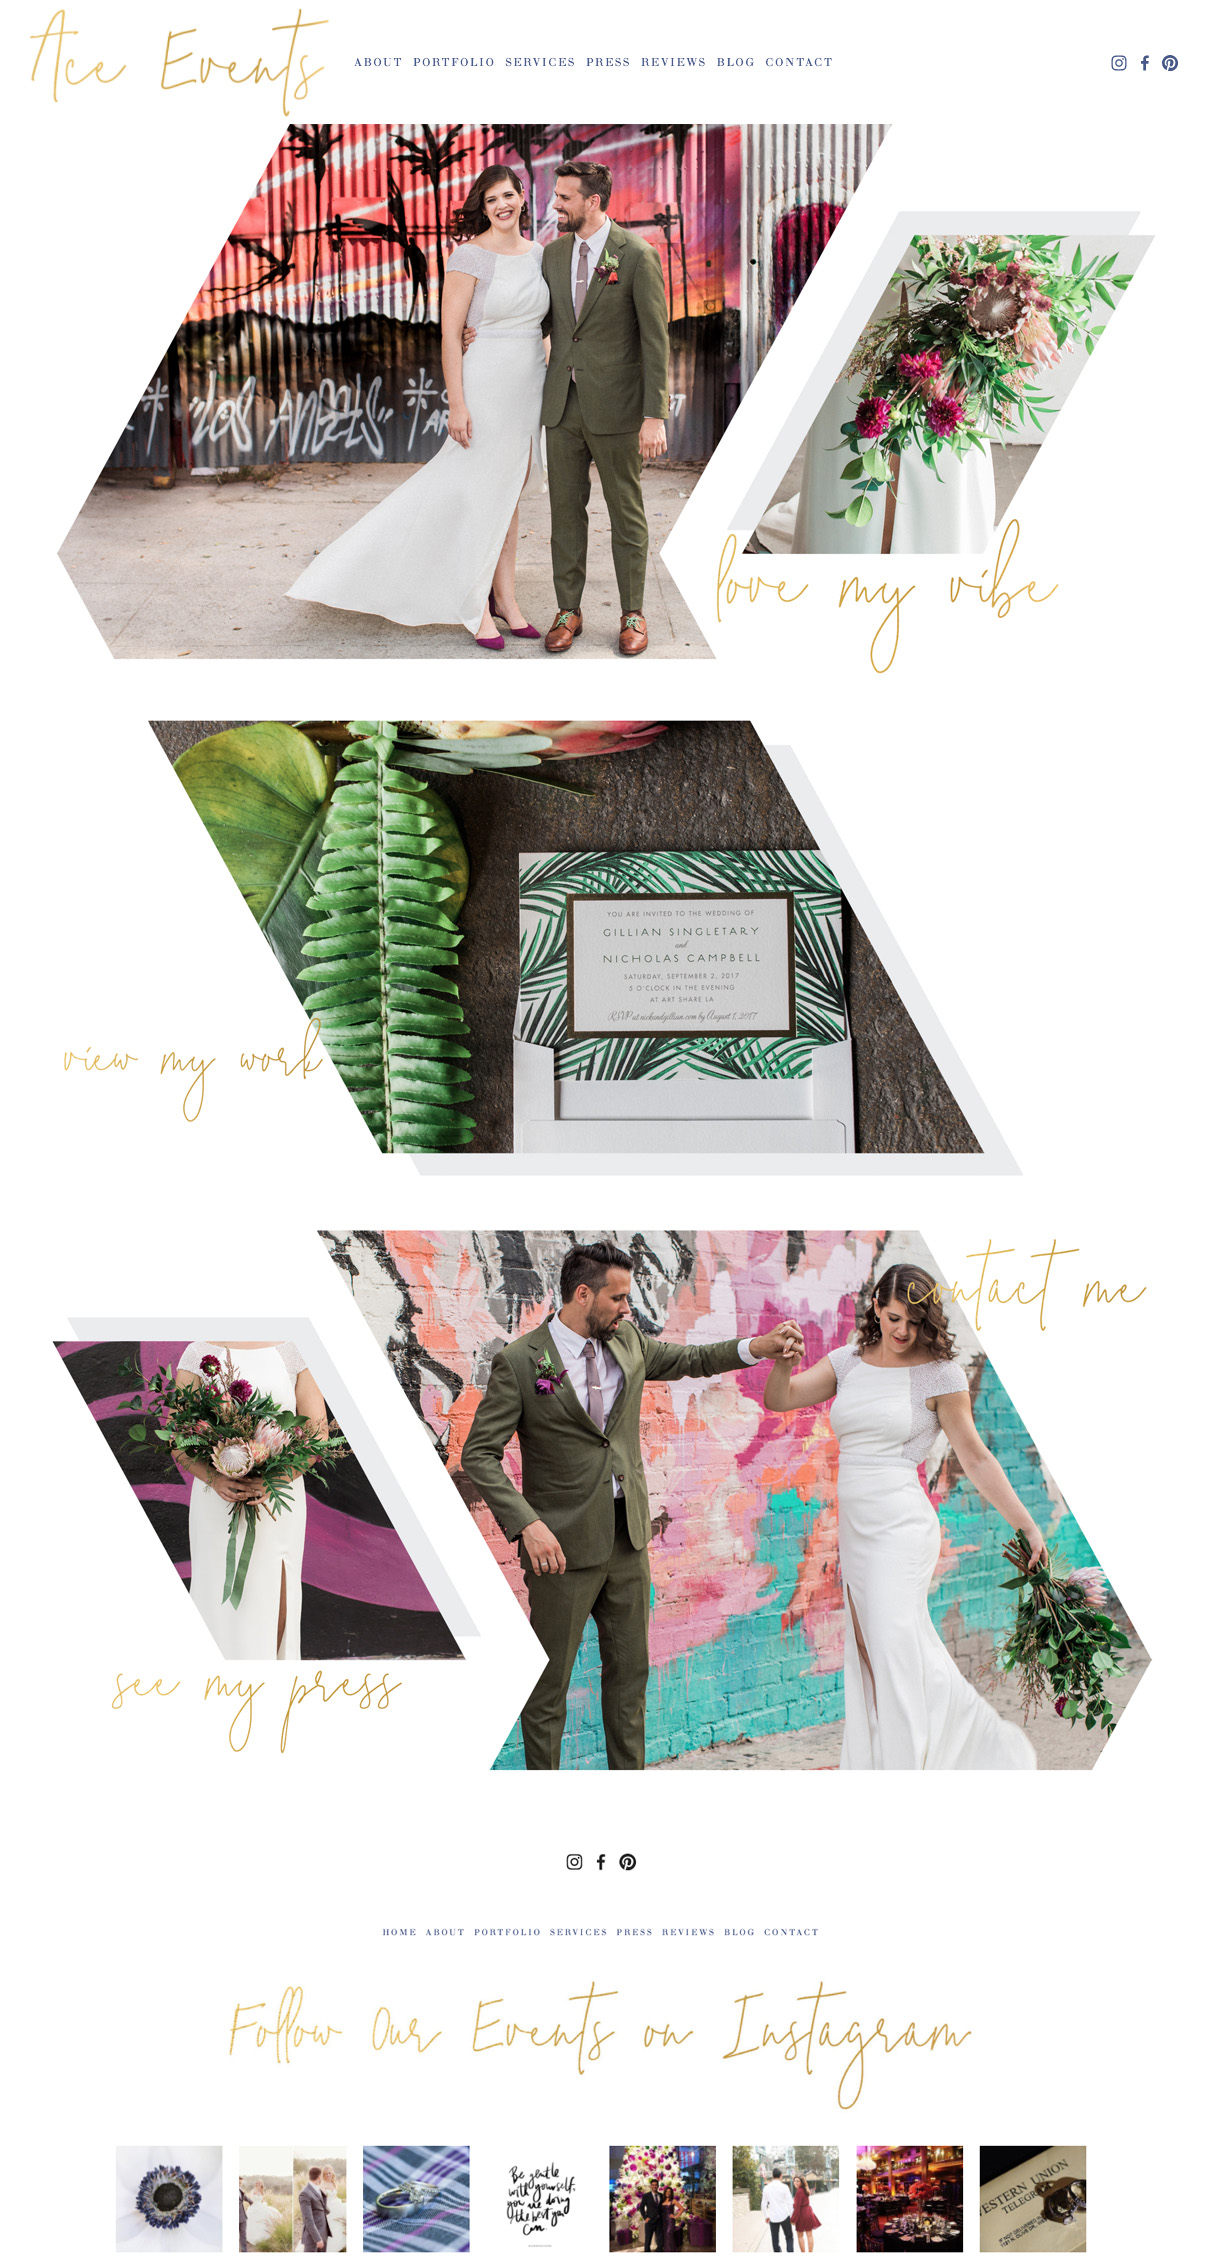 Squarespace Website Designer For Wedding Industry Professionals   The Editor's Touch